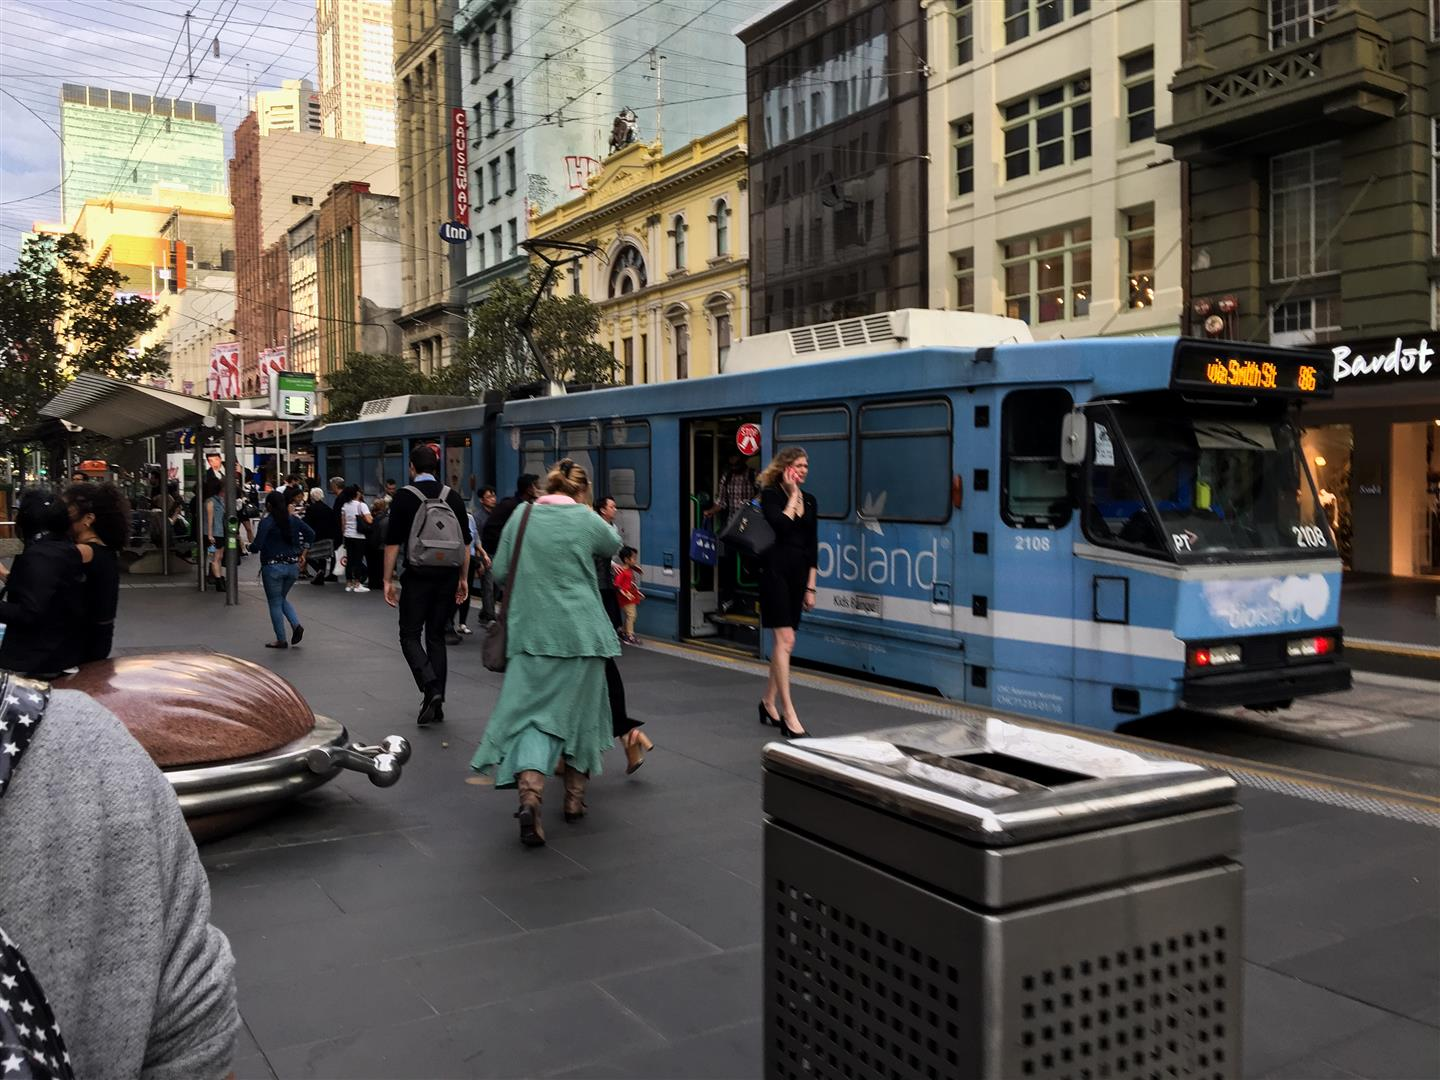 The rest of Melbourne's inter-free-zone trams are much more modern.